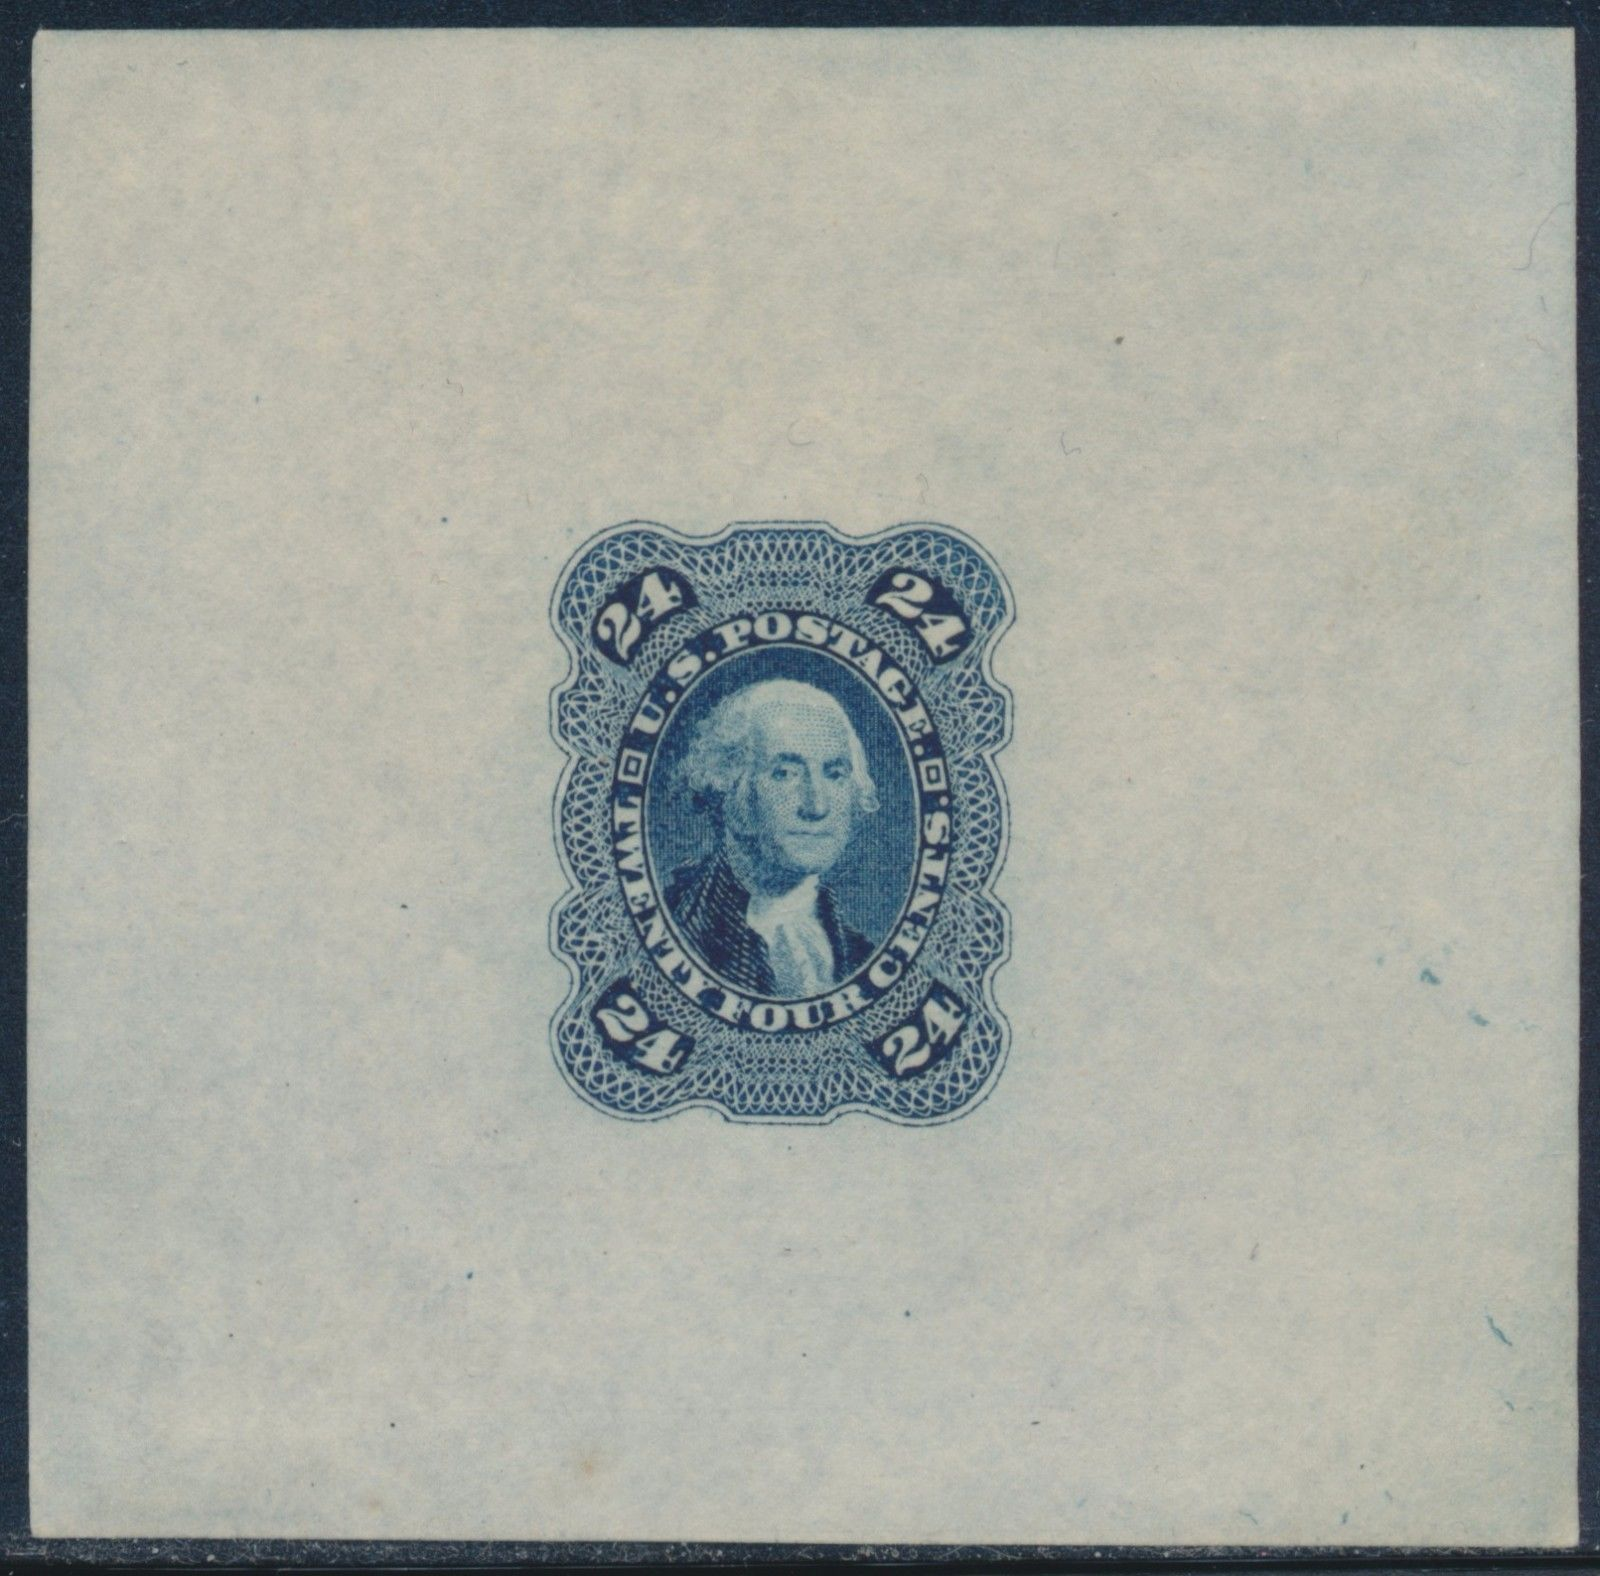 70 e4h die essay blue on bond paper bs9893 hipstamp Blue bond paper